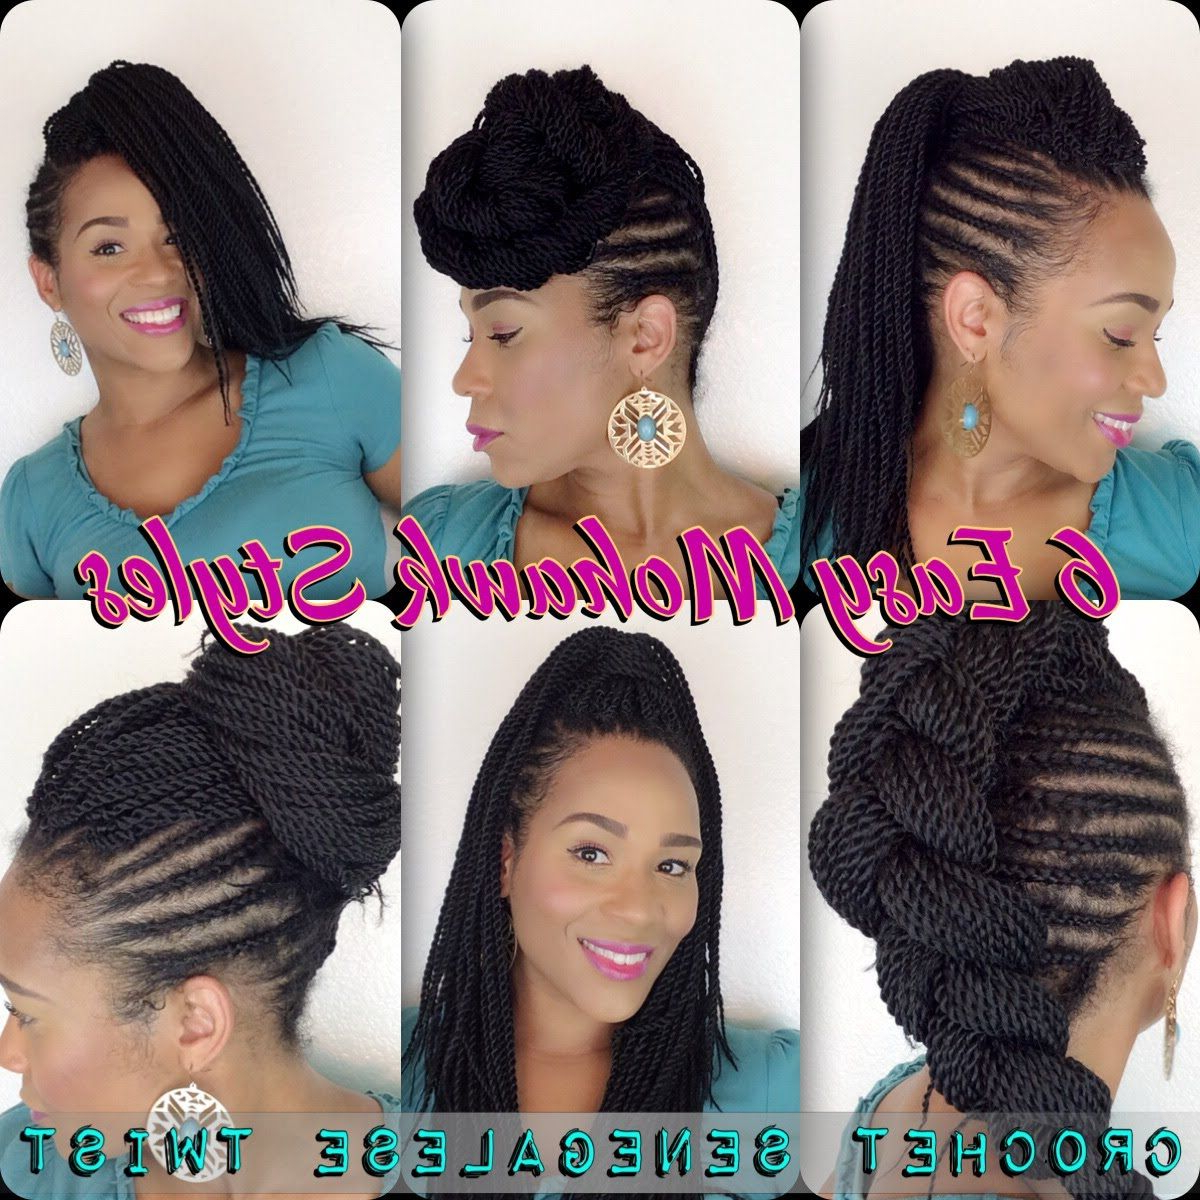 Trendy Twisted And Braided Mohawk Hairstyles Pertaining To 6 Easy Mohawk Styles – Senegalese Twist (View 18 of 20)